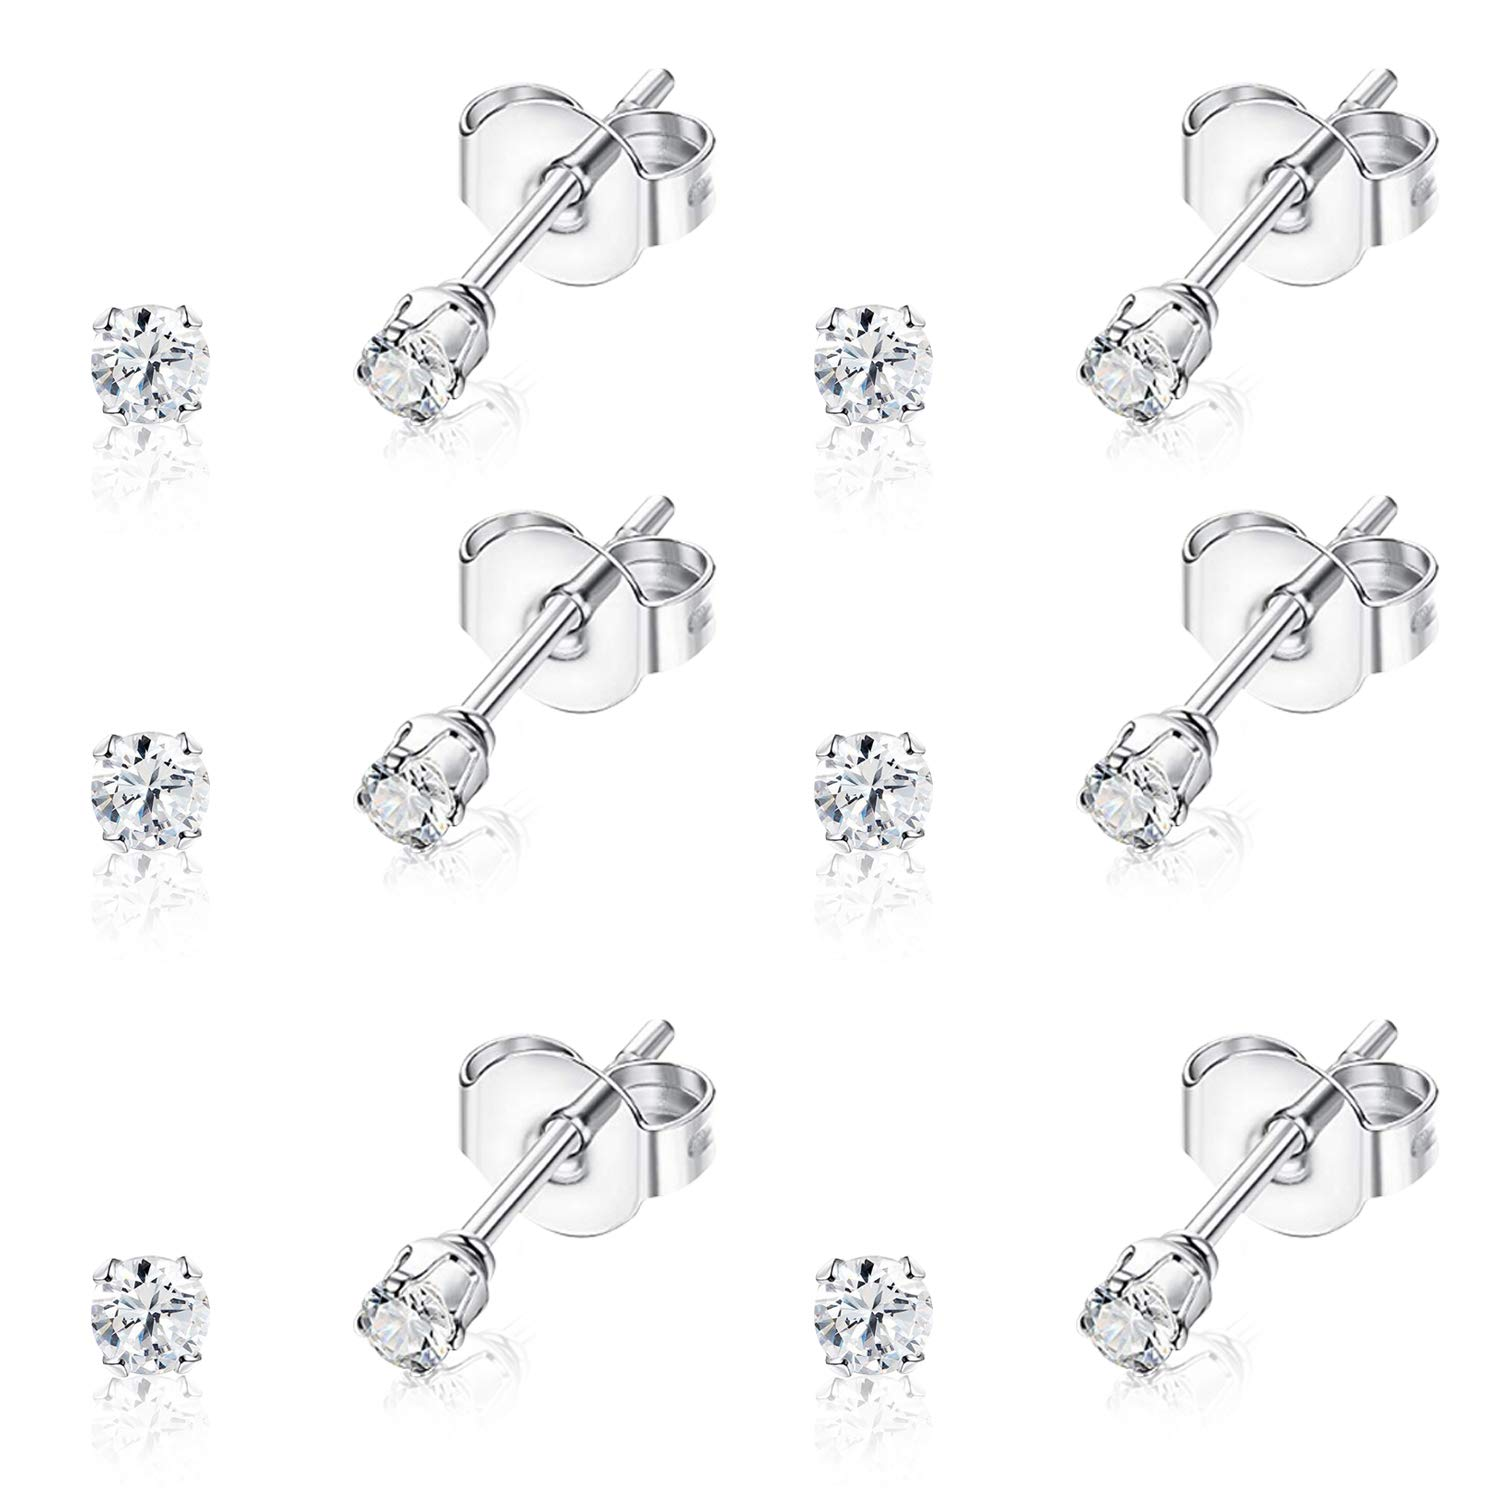 UHIBROS Hypoallergenic Stainless Steel Stud Earrings Set 2mm Tiny Cubic Zirconia Ear Studs for Women Man 18K White Gold Plated 6 Pairs